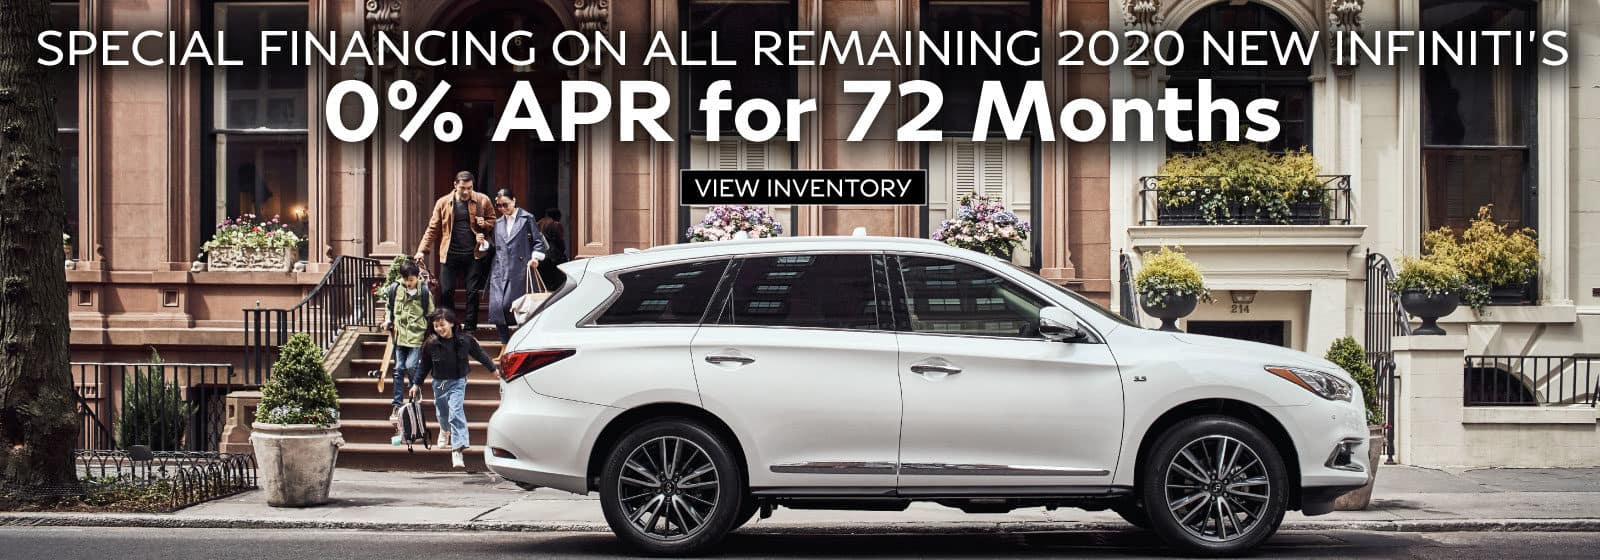 2020 Special Financing. 0% APR for 72 Months.